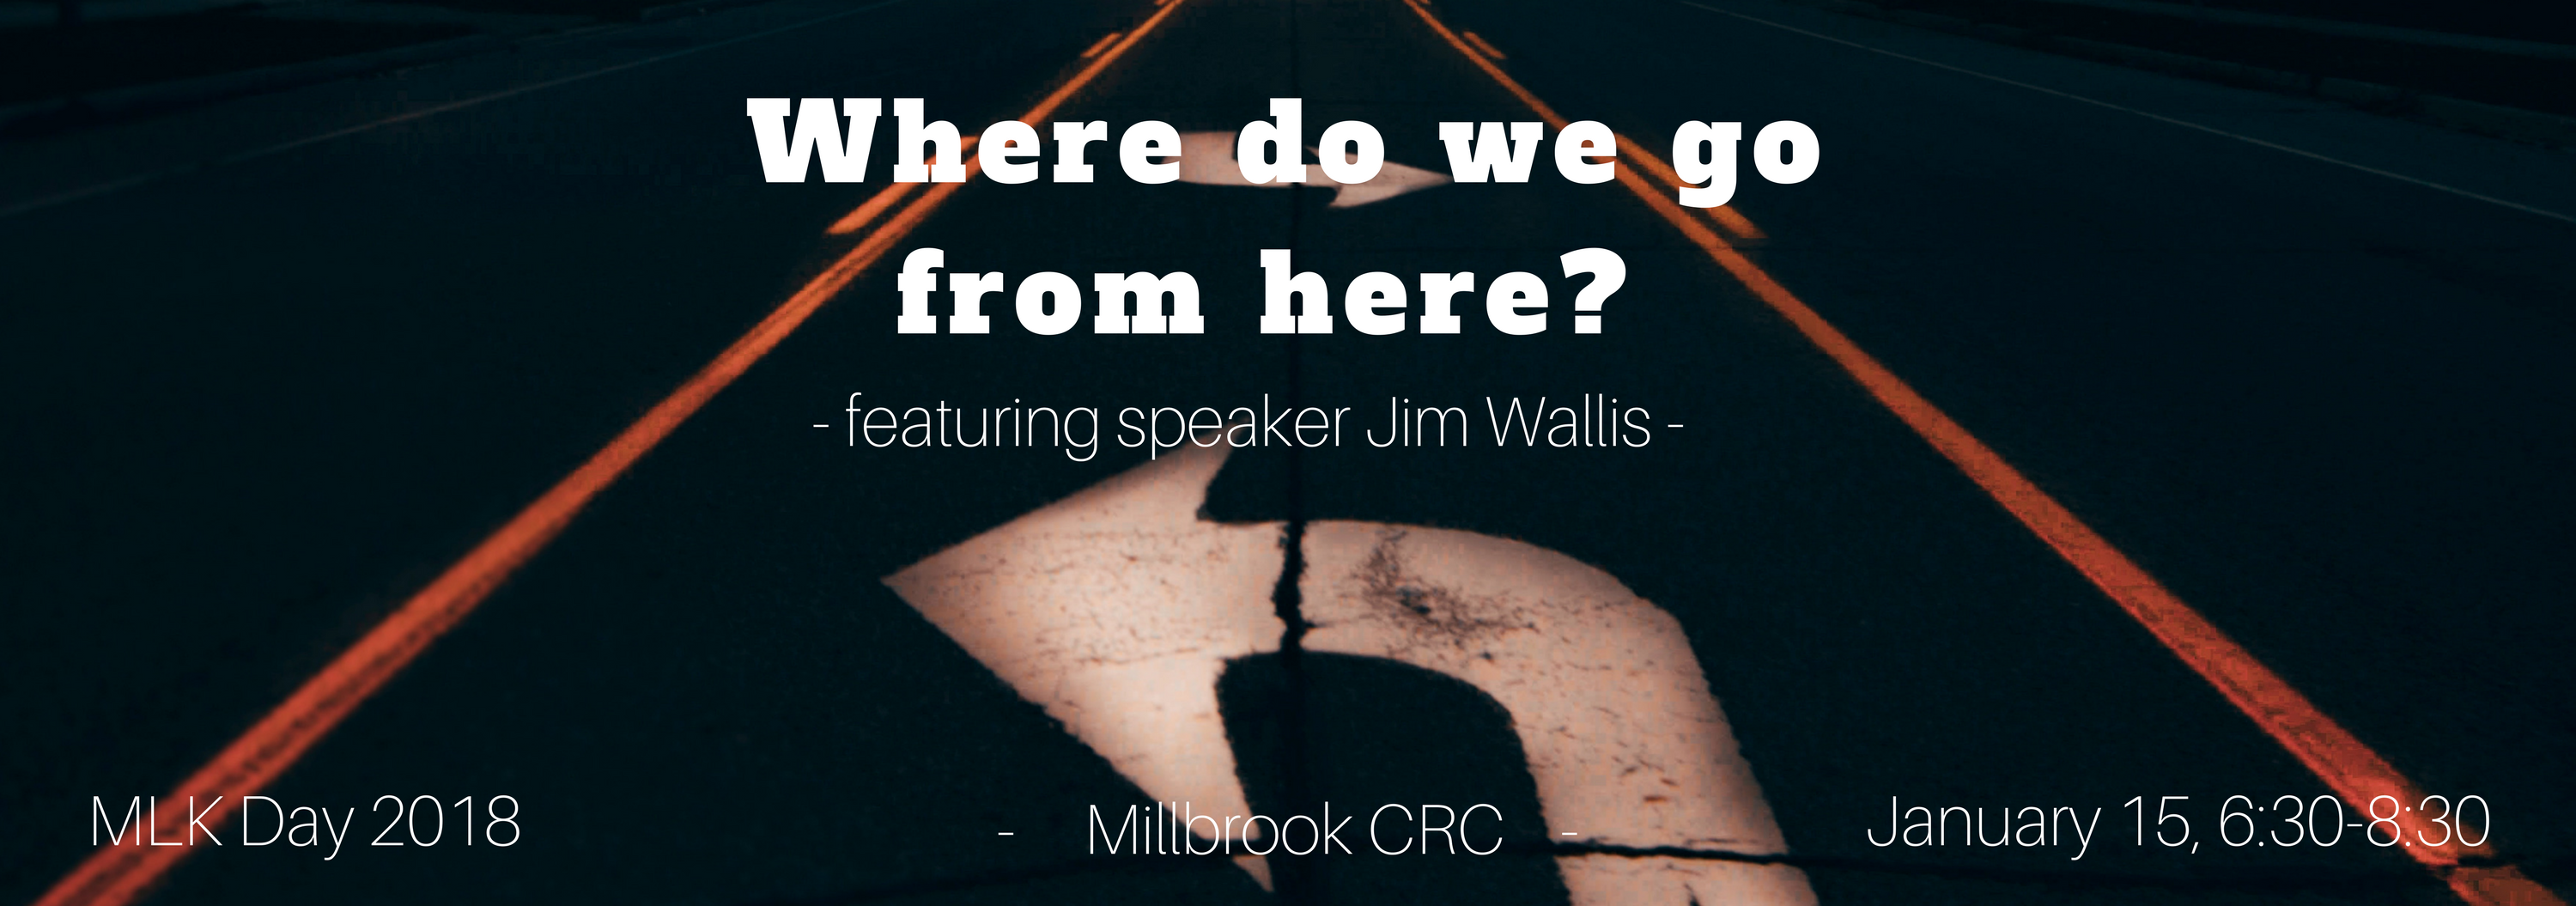 MLK Day event image highlighting Rev. Jim Wallis as speaker